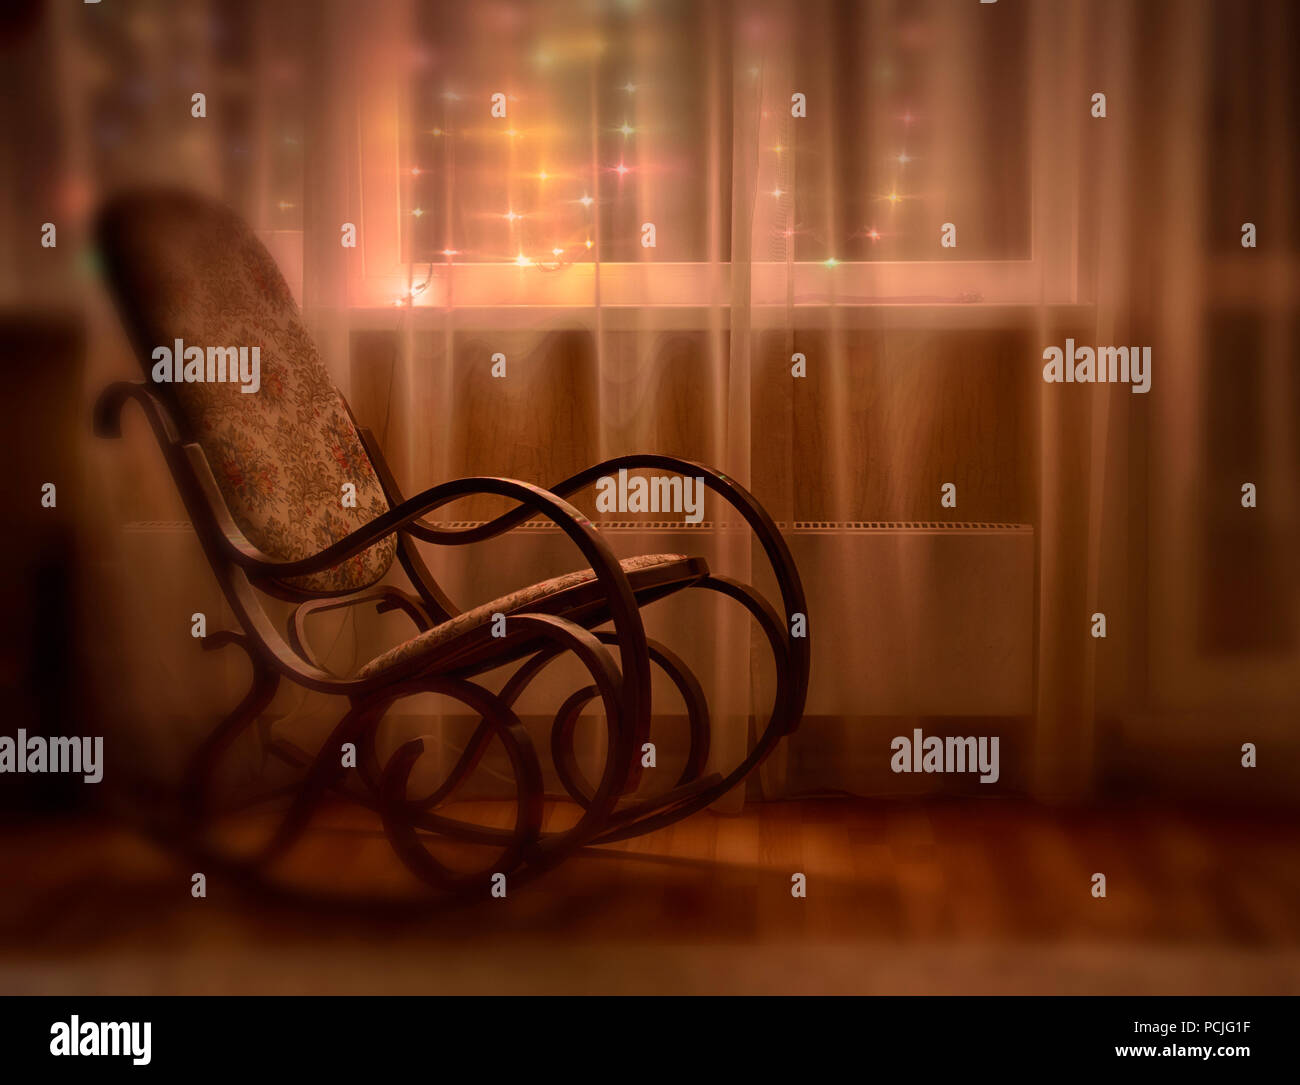 A rocking chair stands by the window in the evening light. Blurred effect. - Stock Image